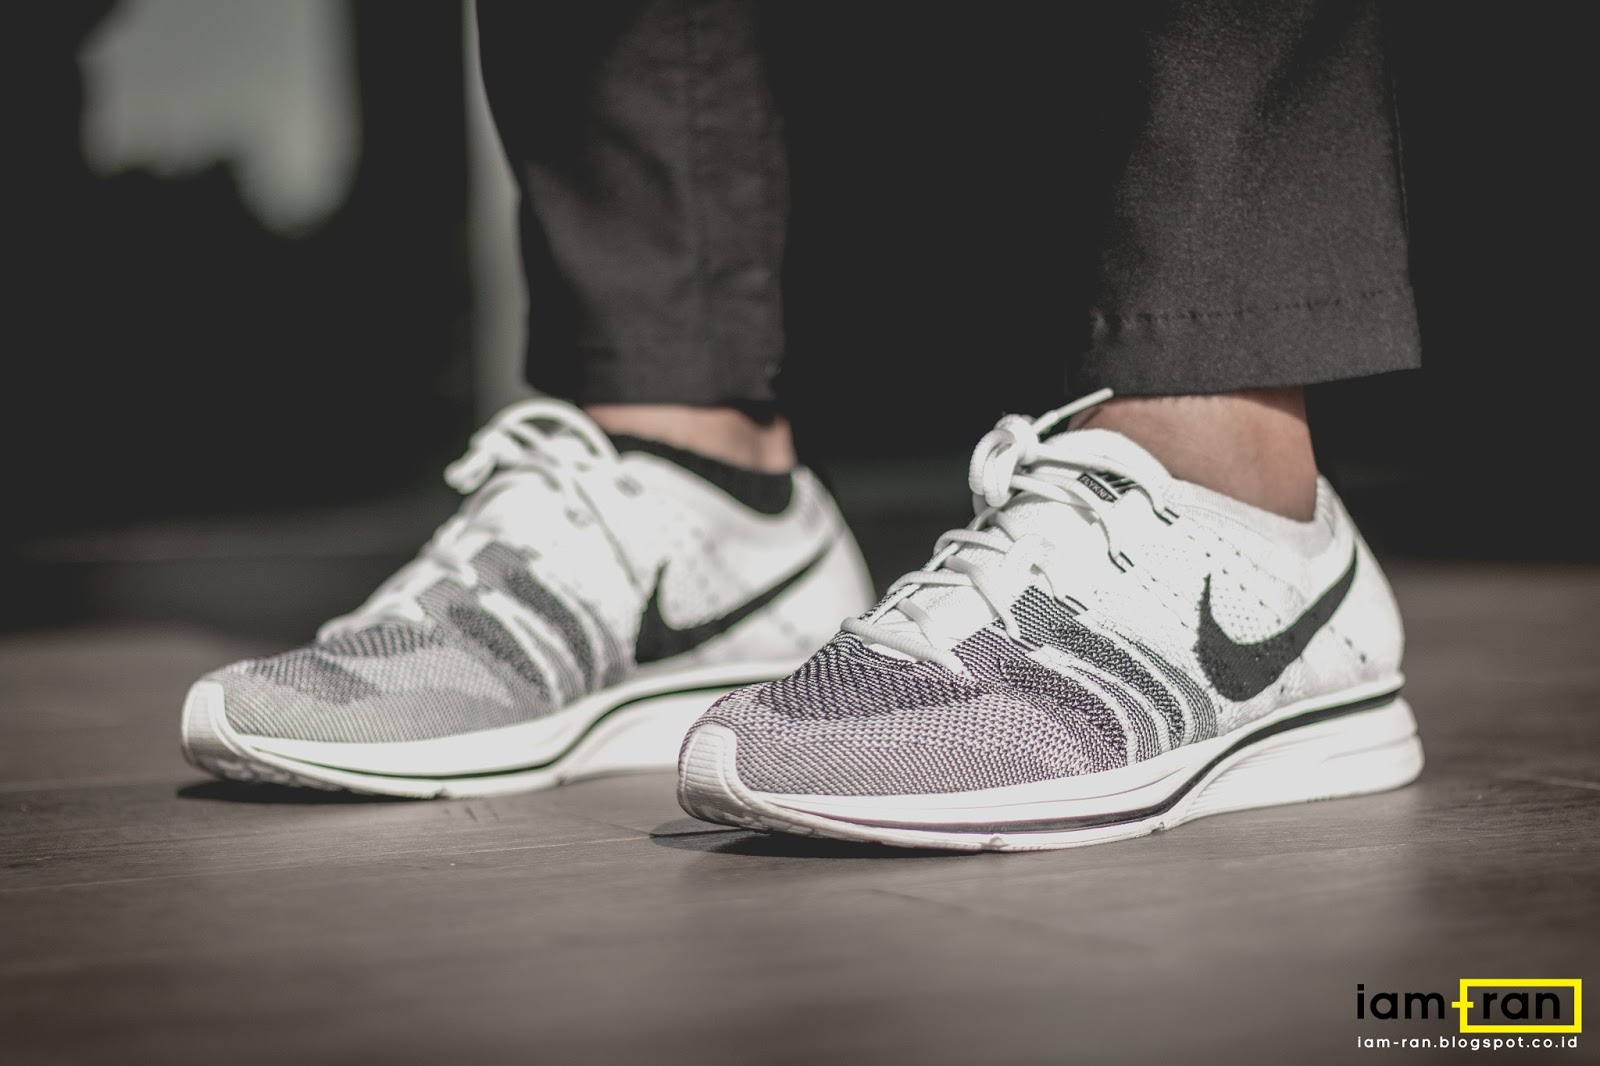 b91d56df9cf IAM-RAN  ON FEET   Michael Vincent - Nike Flyknit Trainer White +Black